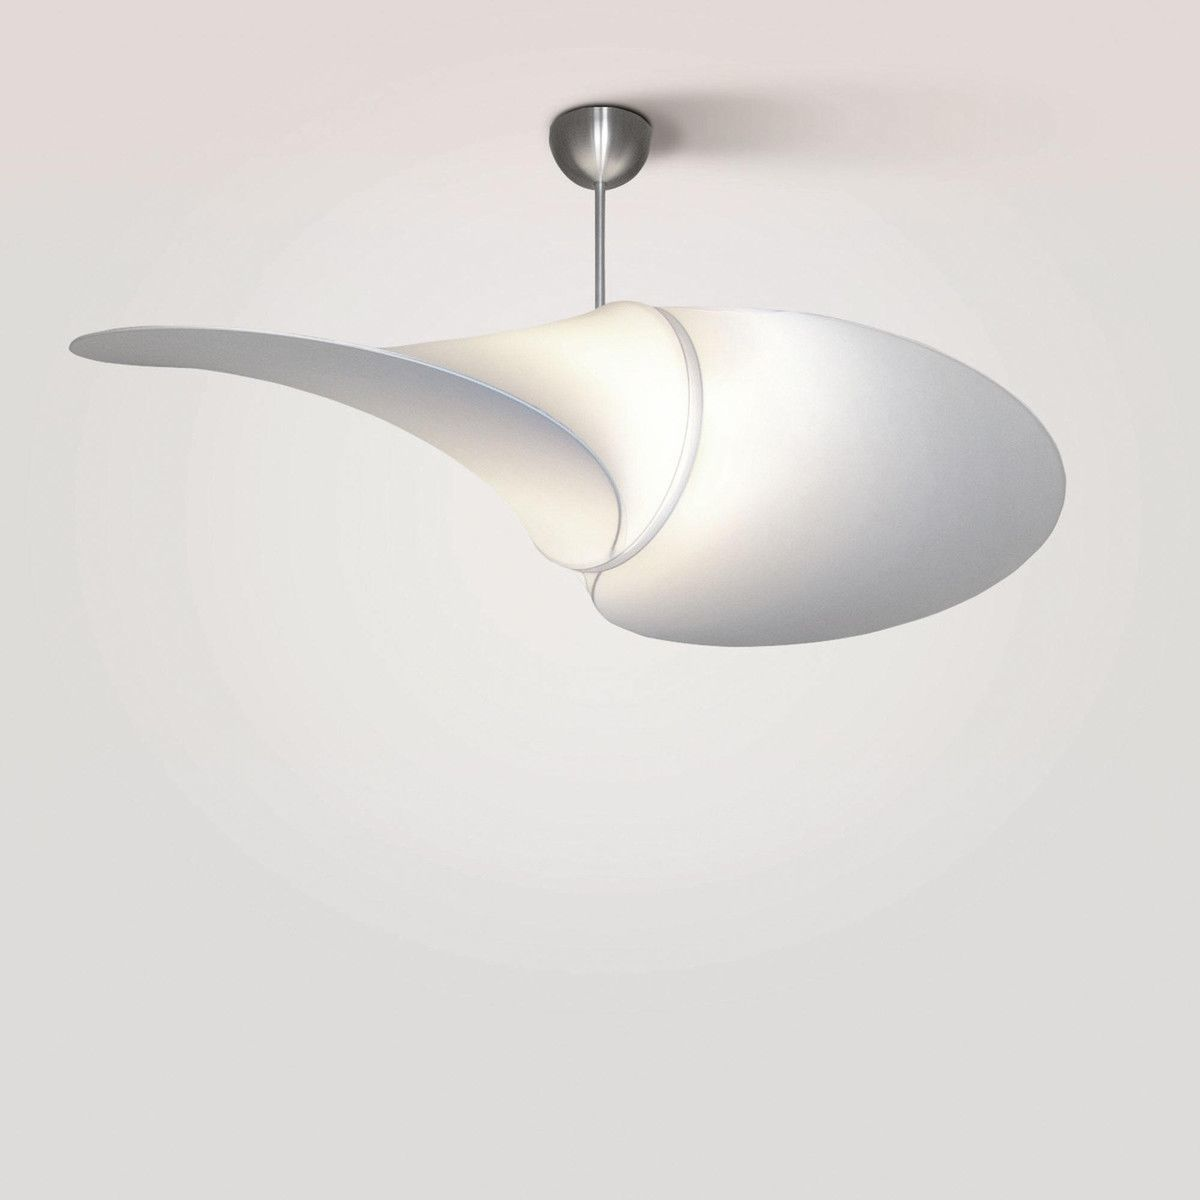 Propeller fan ceiling lamp serien - Propeller ceiling fans ...